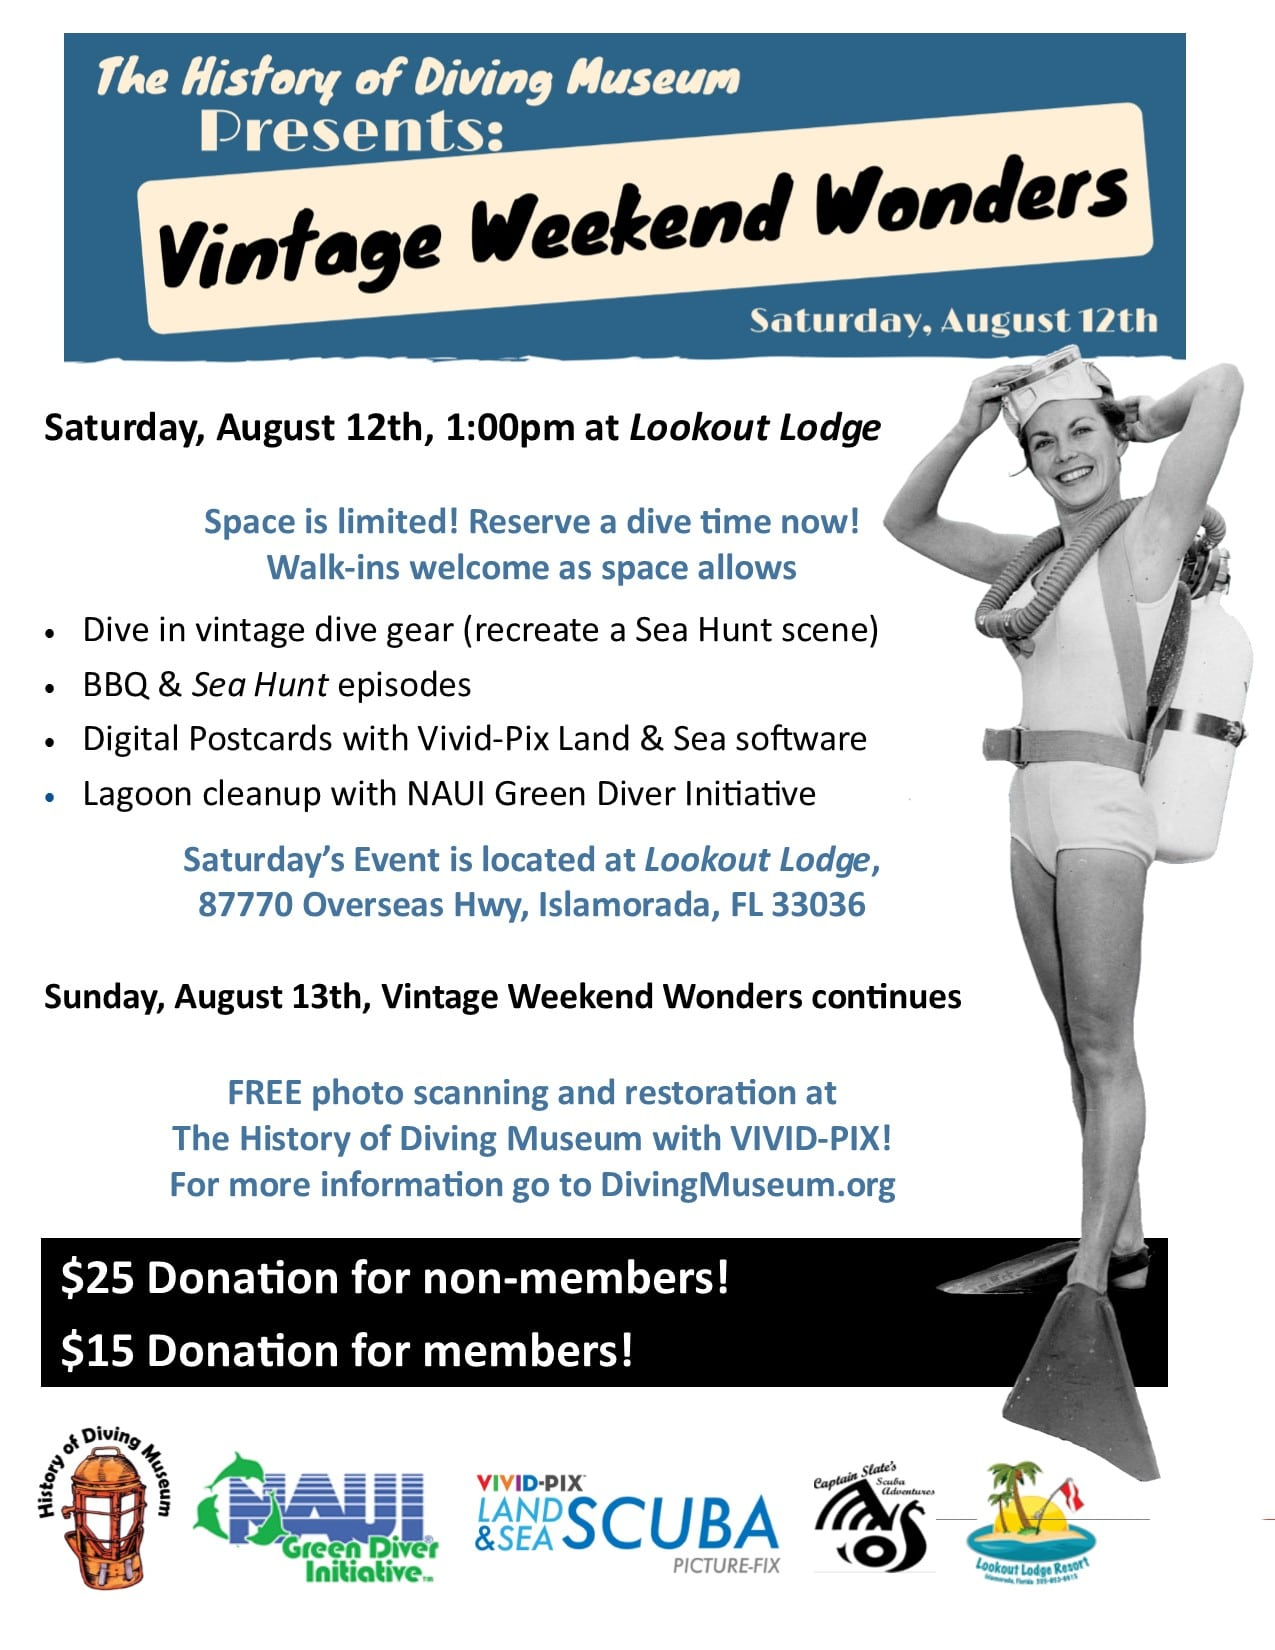 NAUI To Sponsor History Of Diving Museum 'Vintage Weekend Wonders' Event